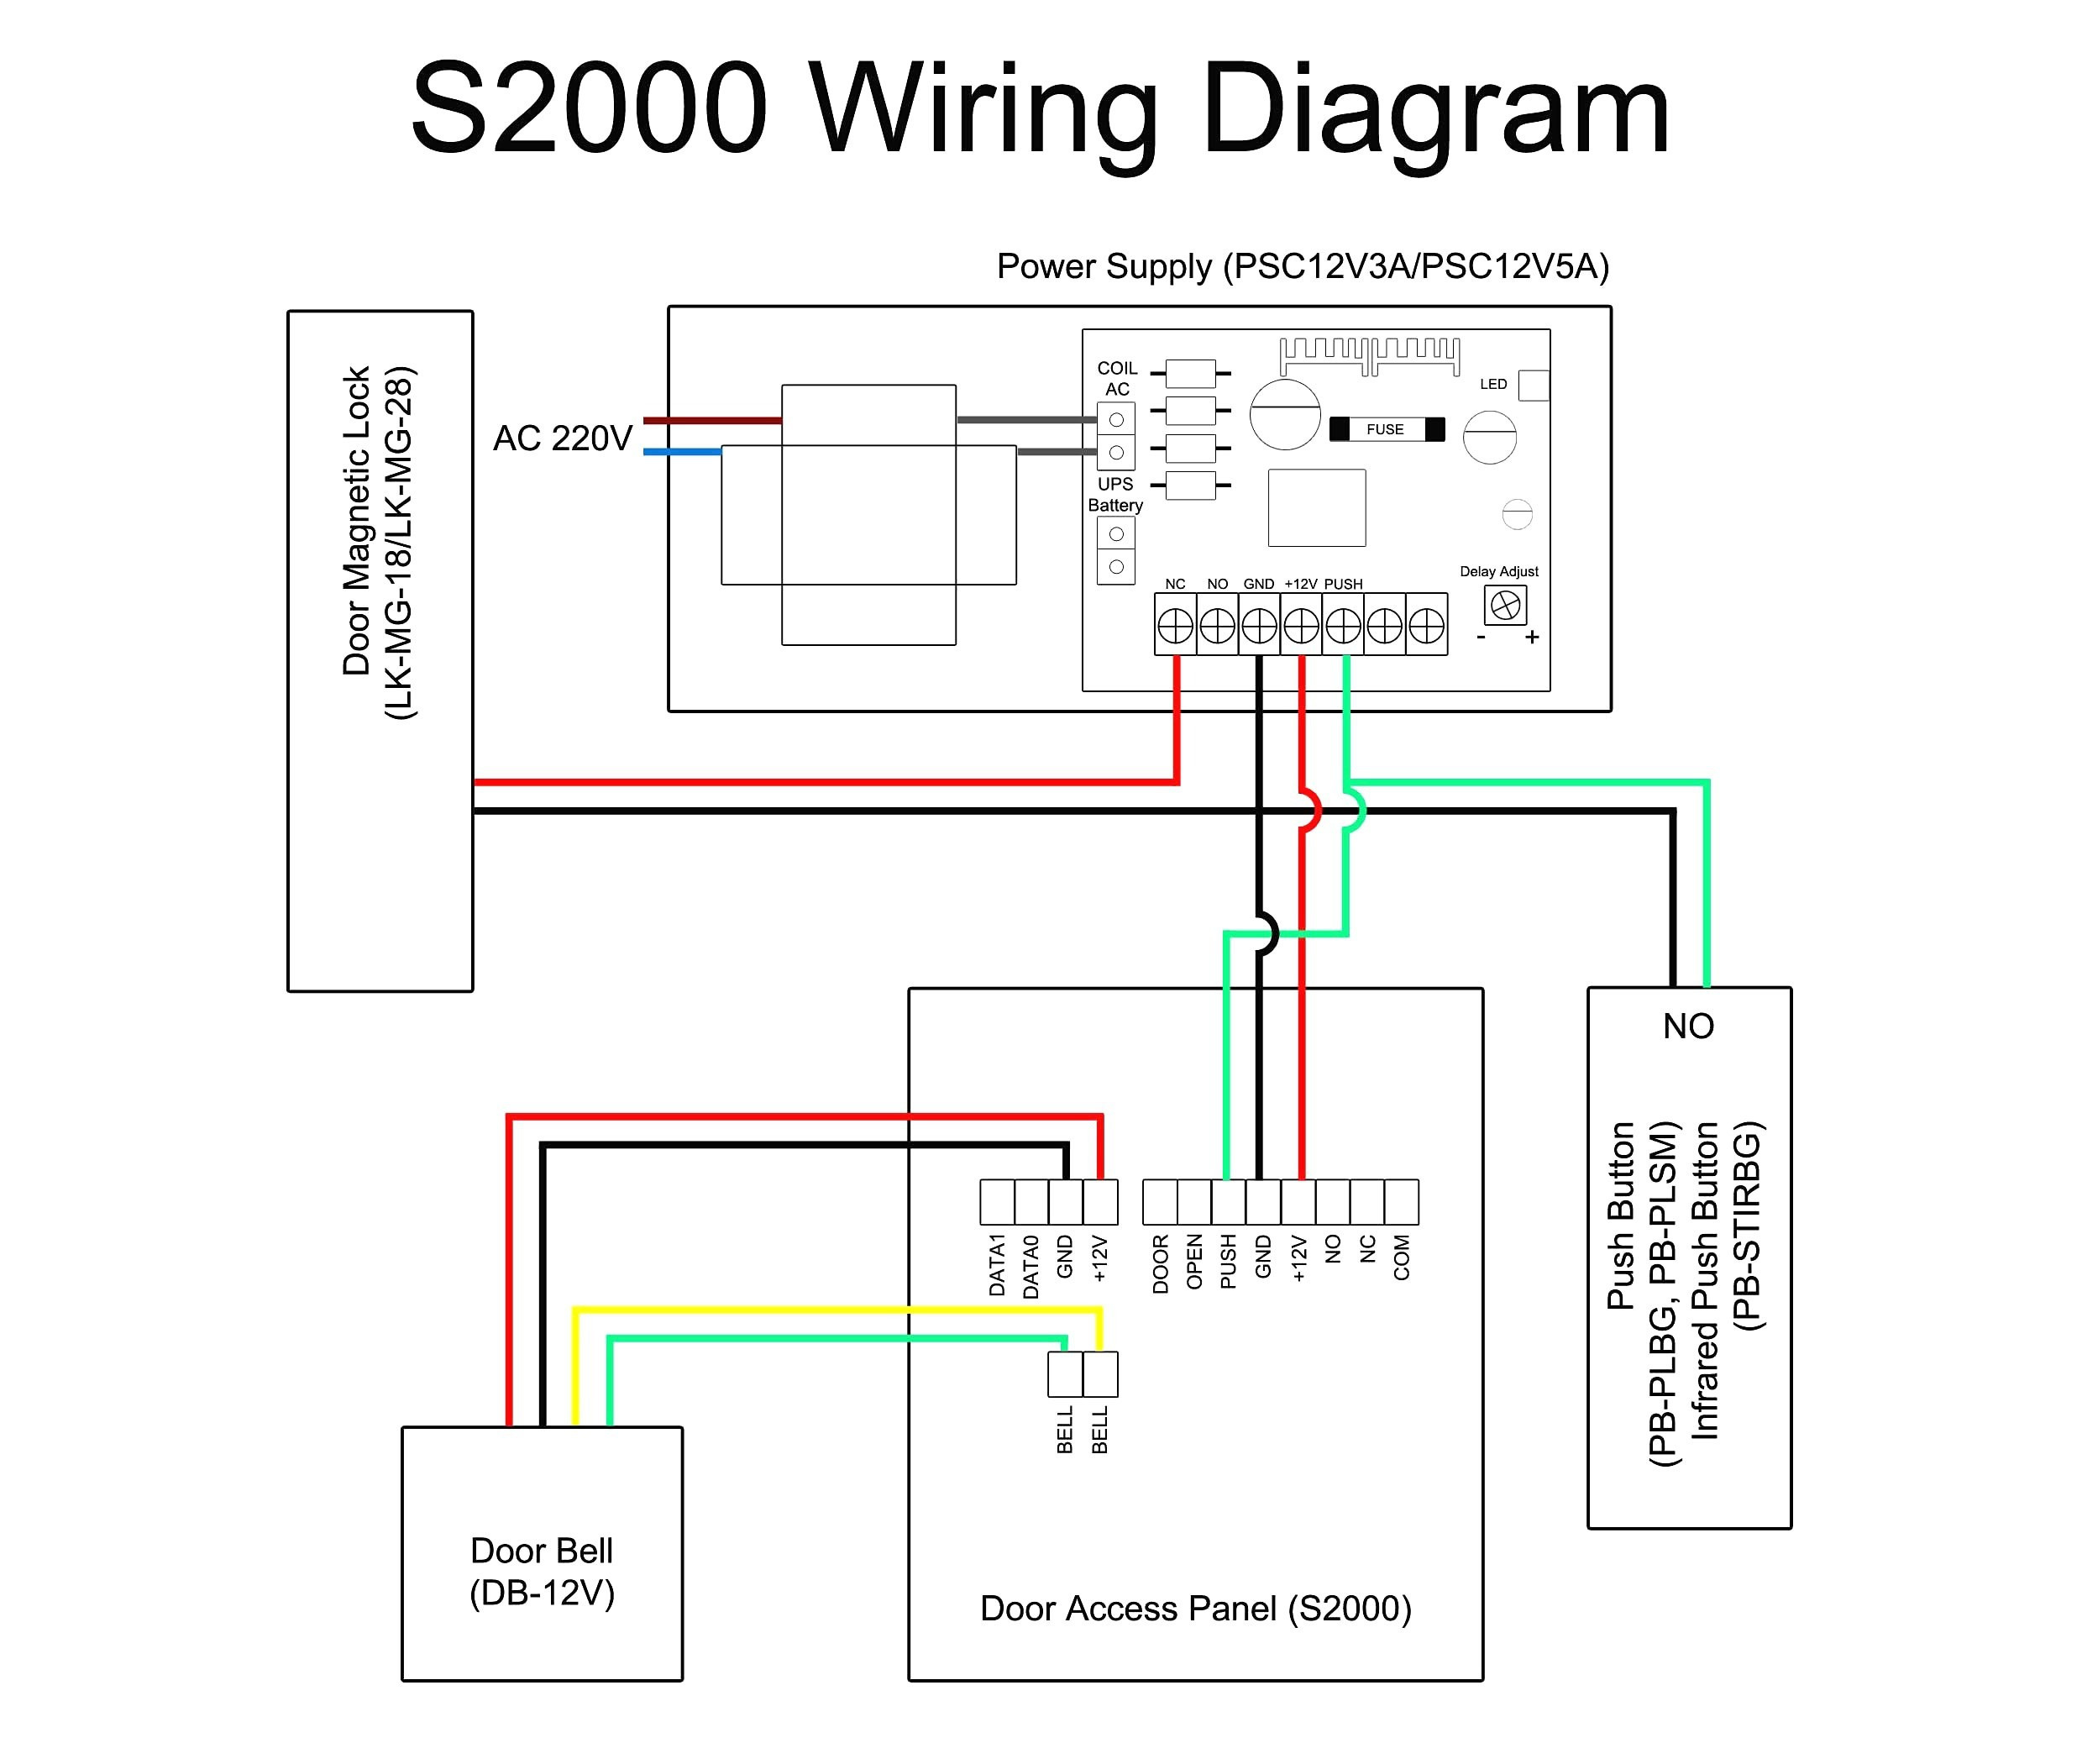 door access control wiring diagram Collection-Wiring Diagram Security System Best Wiring Diagram for Electric Door Bell Fresh Bunker Hill Security 8-s